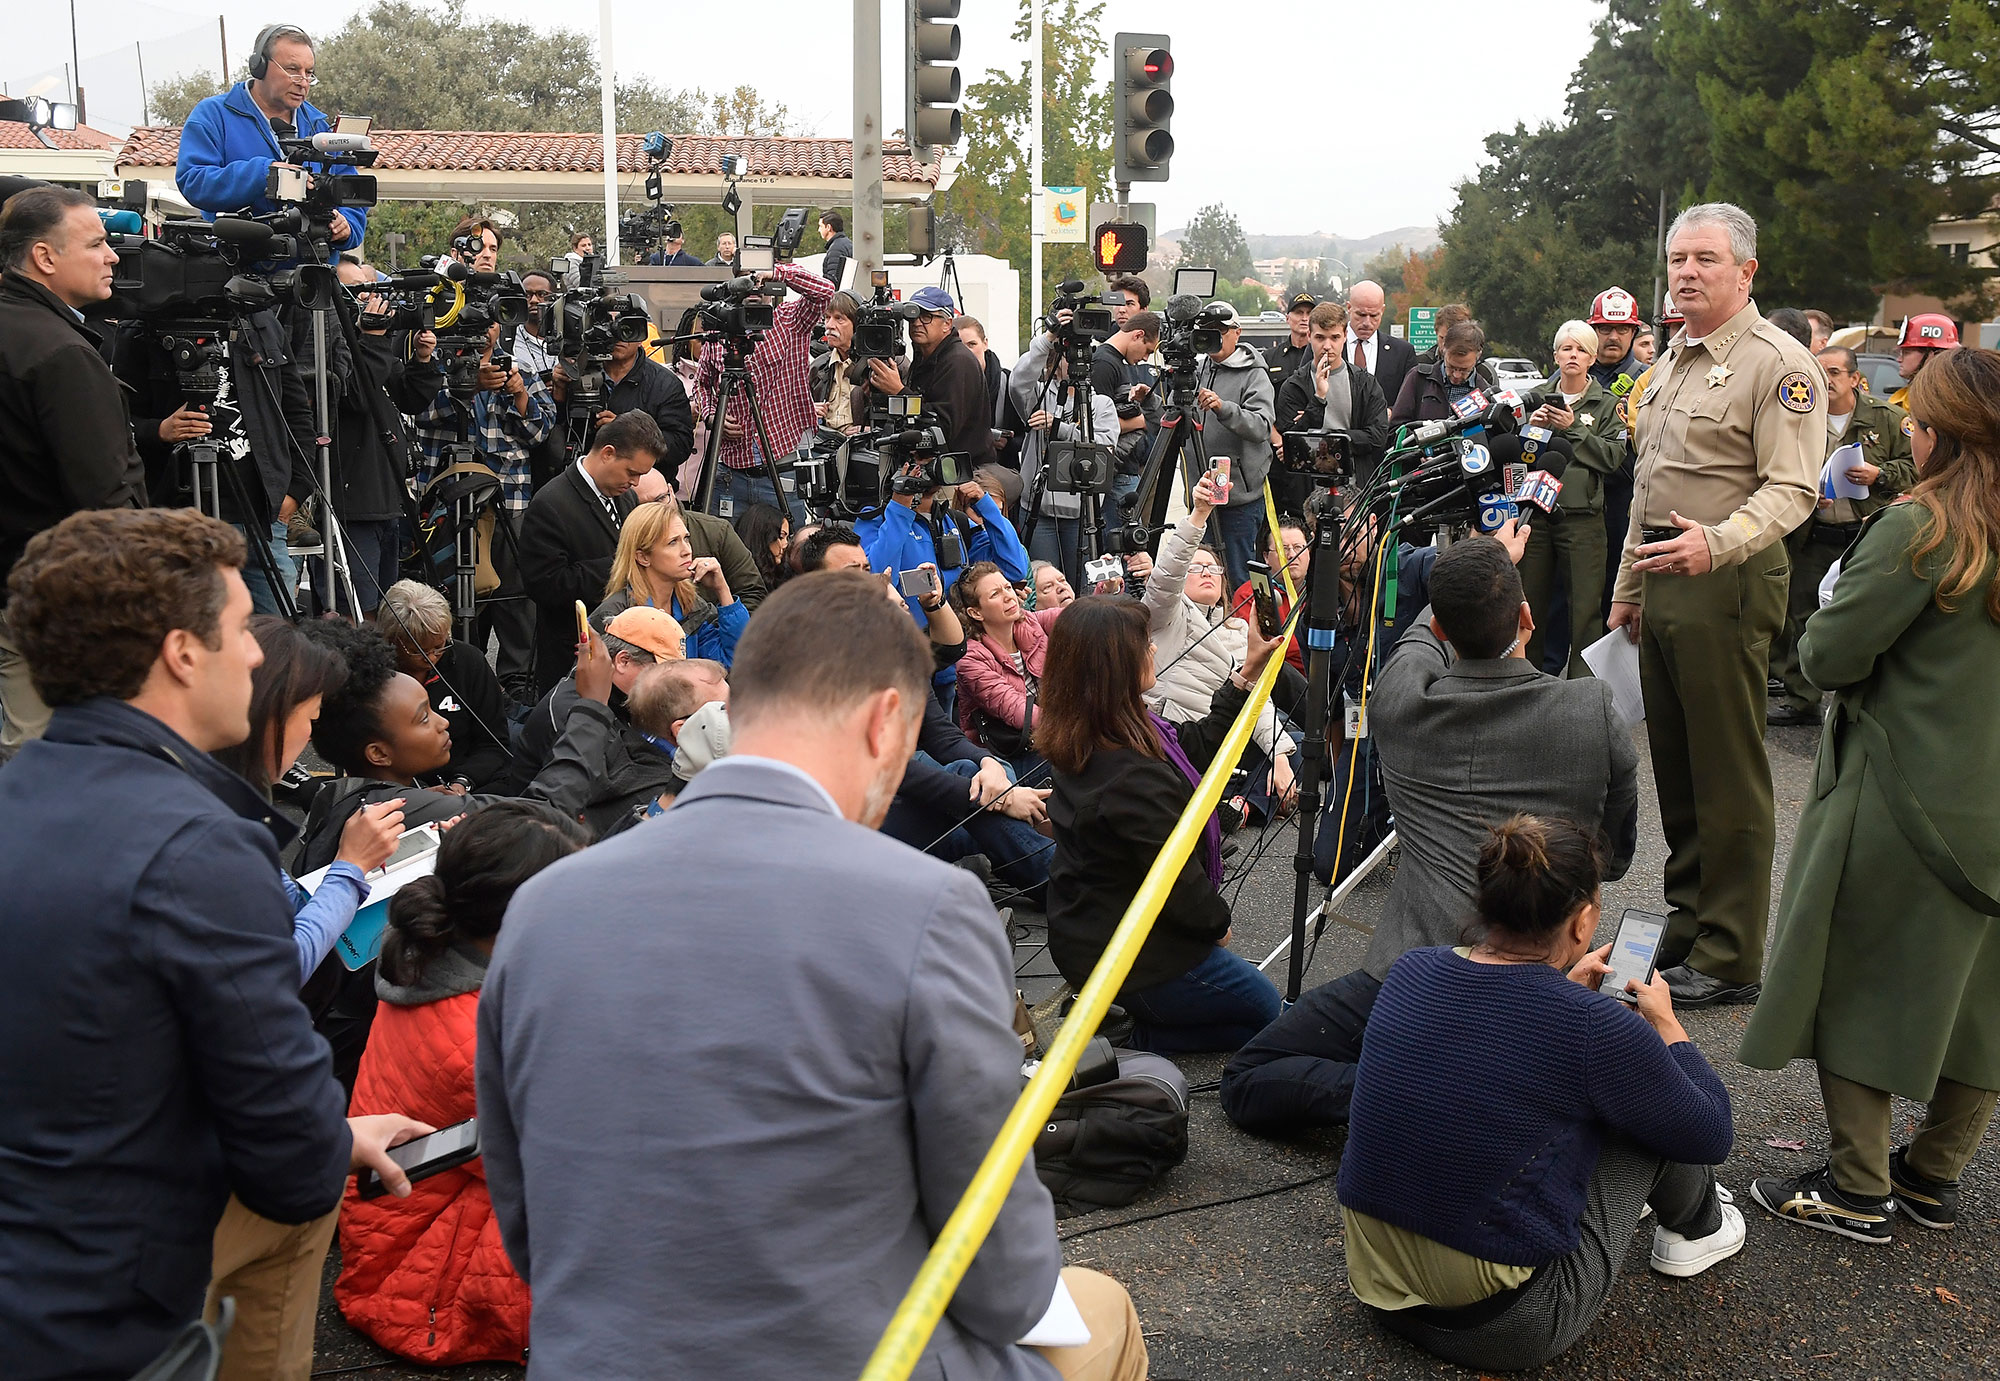 <div class='meta'><div class='origin-logo' data-origin='none'></div><span class='caption-text' data-credit='Mark J. Terrill/AP Photo'>Ventura County Sheriff Geoff Dean speaks to reporters near the scene in Thousand Oaks, Calif., on Thursday, Nov. 8, 2018.</span></div>